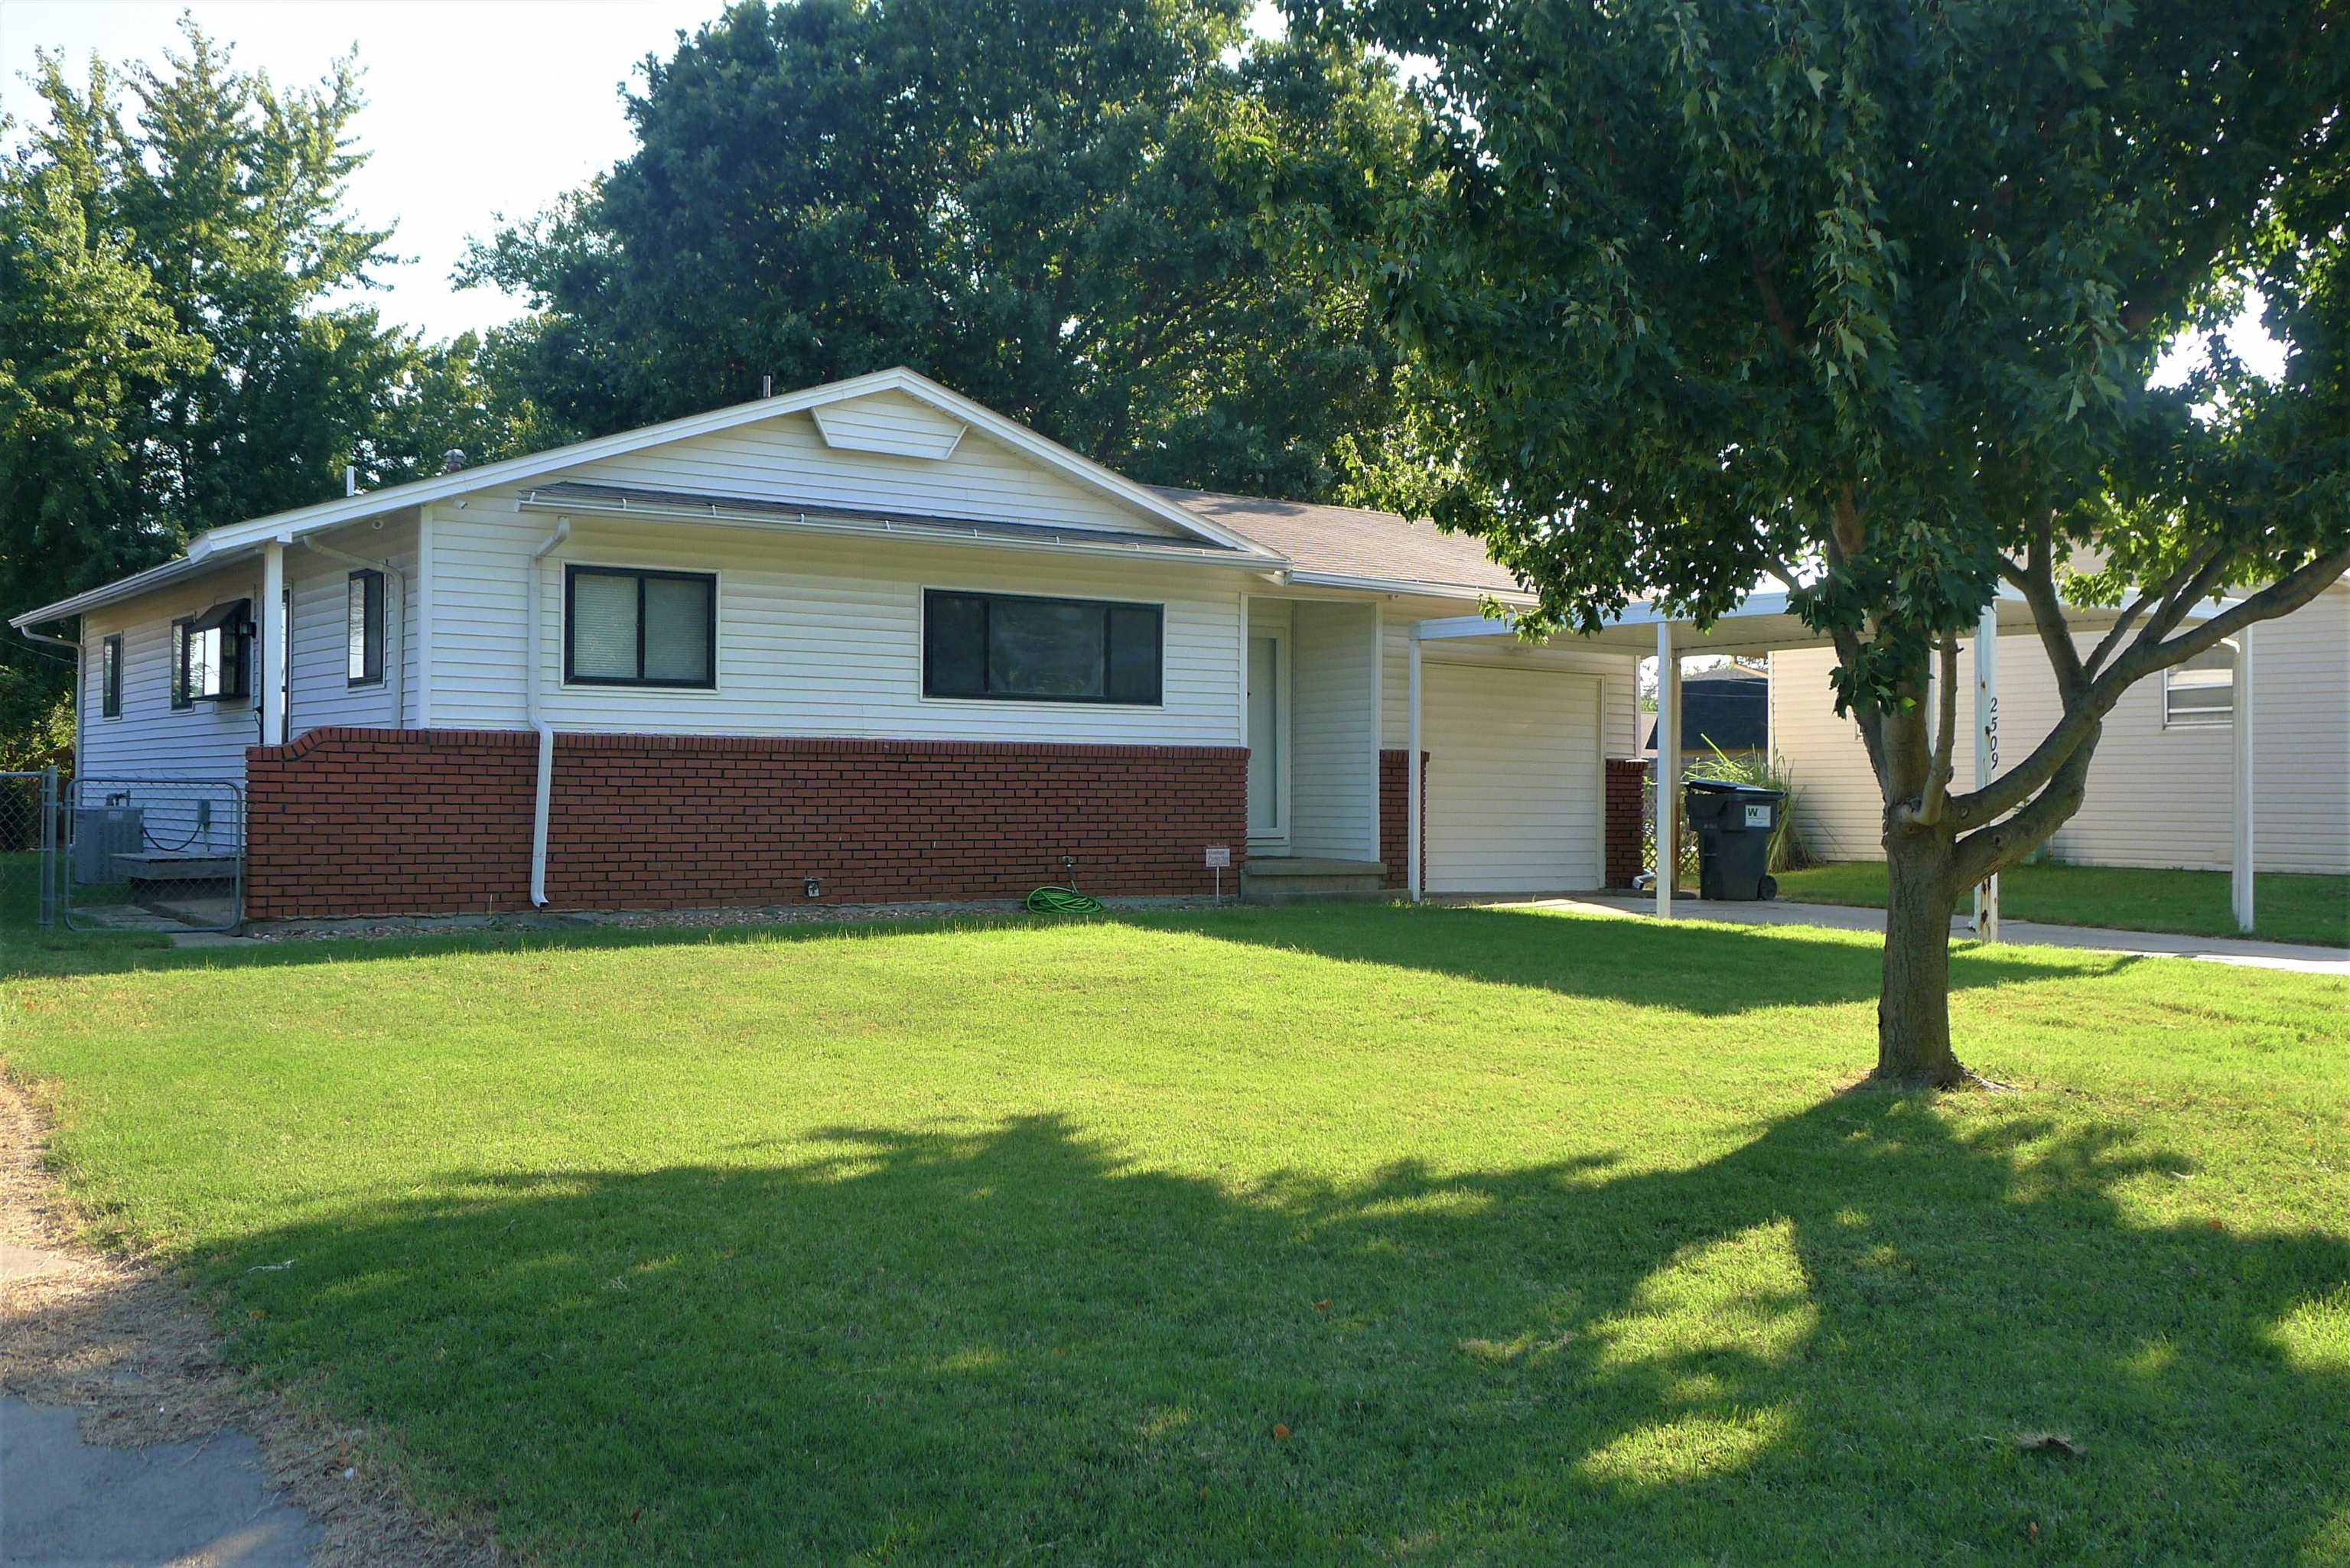 Very well maintained clean home that is move-in ready! Newly painted walls, all new carpet, Samsung